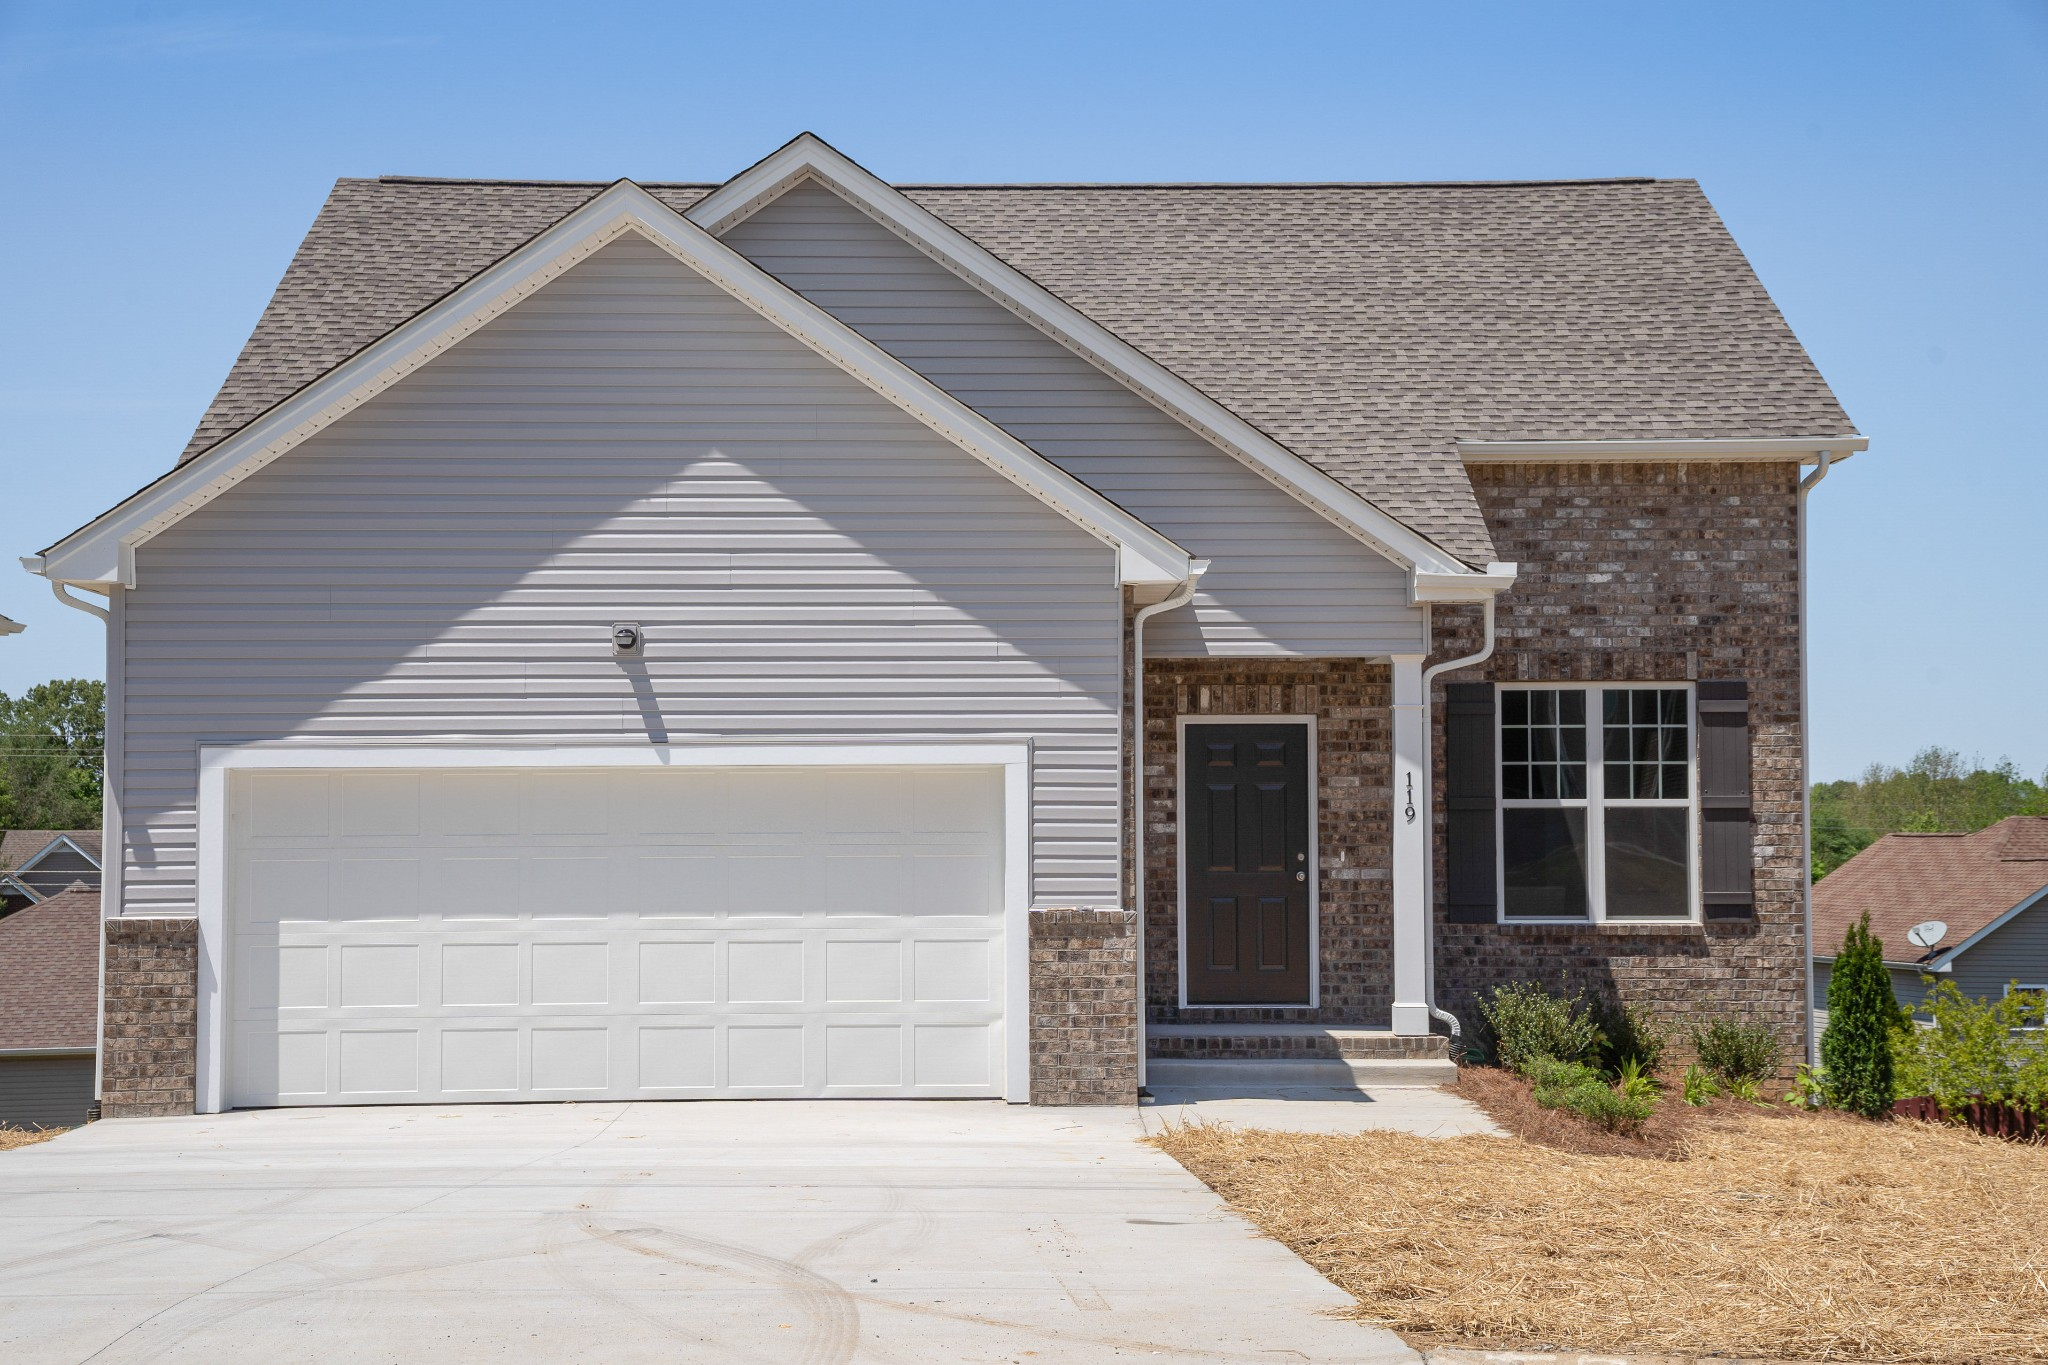 119 Sage Dr Property Photo - Springfield, TN real estate listing